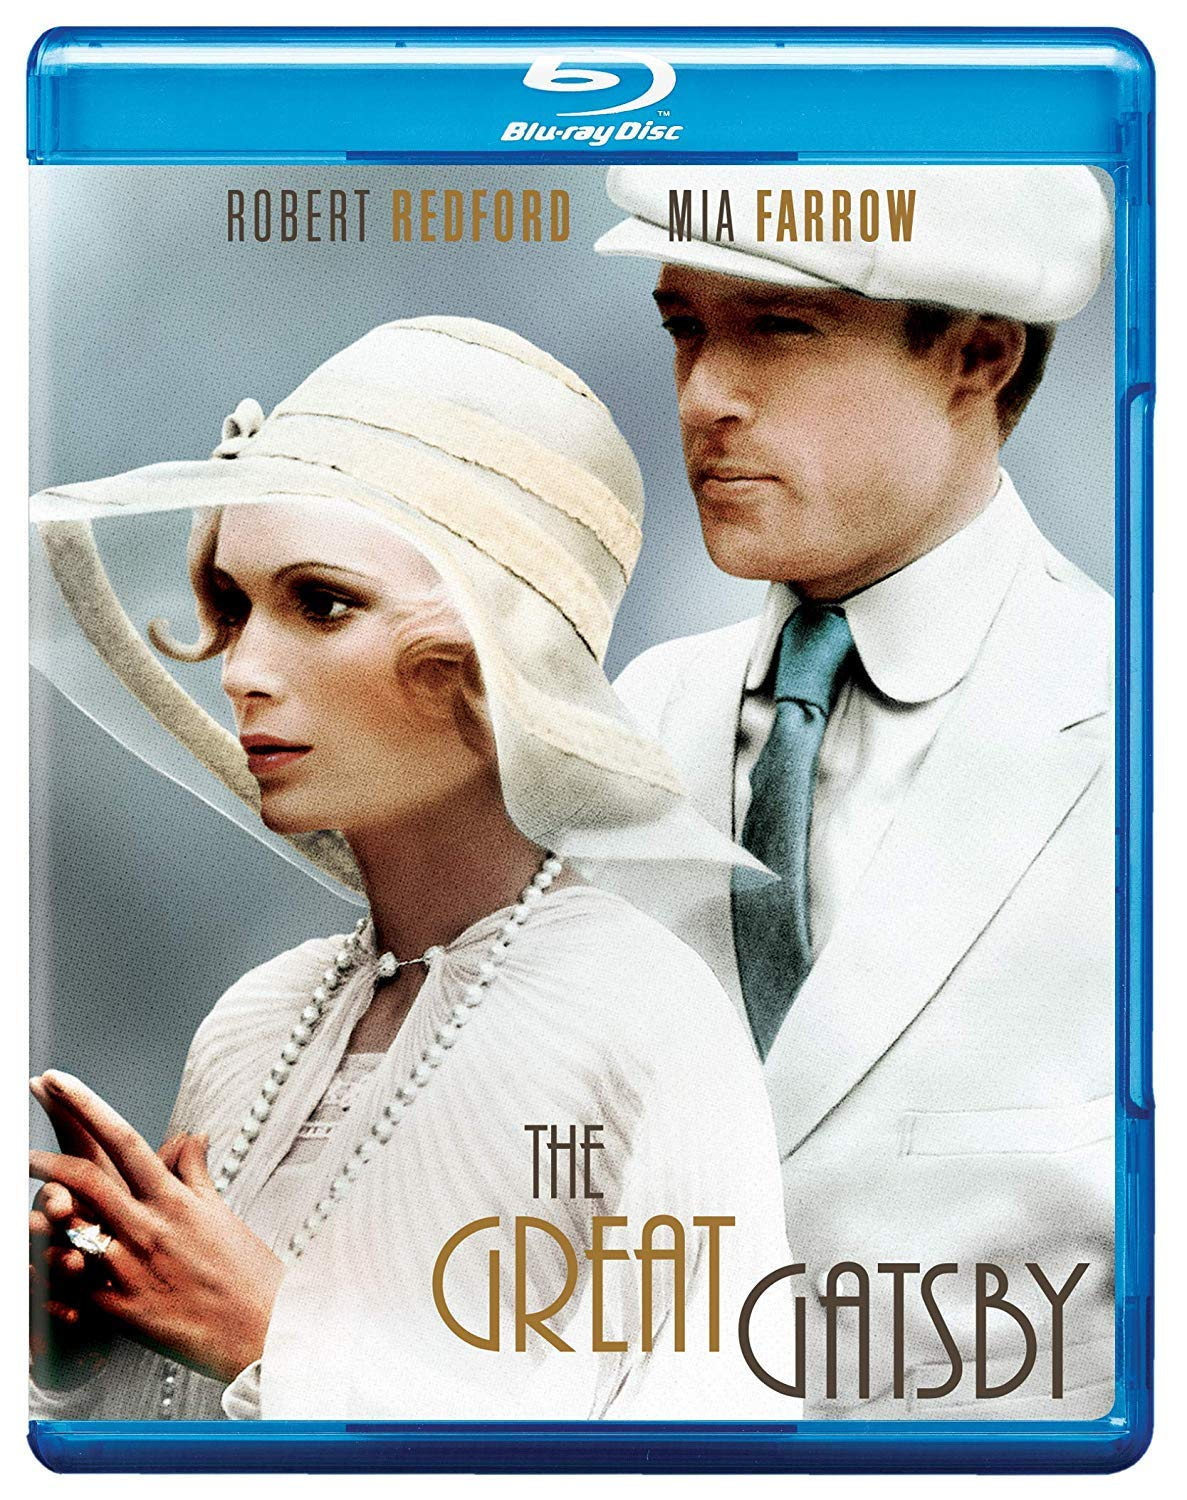 fdb5d165dba4 Amazon.in: Buy The Great Gatsby DVD, Blu-ray Online at Best Prices in India  | Movies & TV Shows